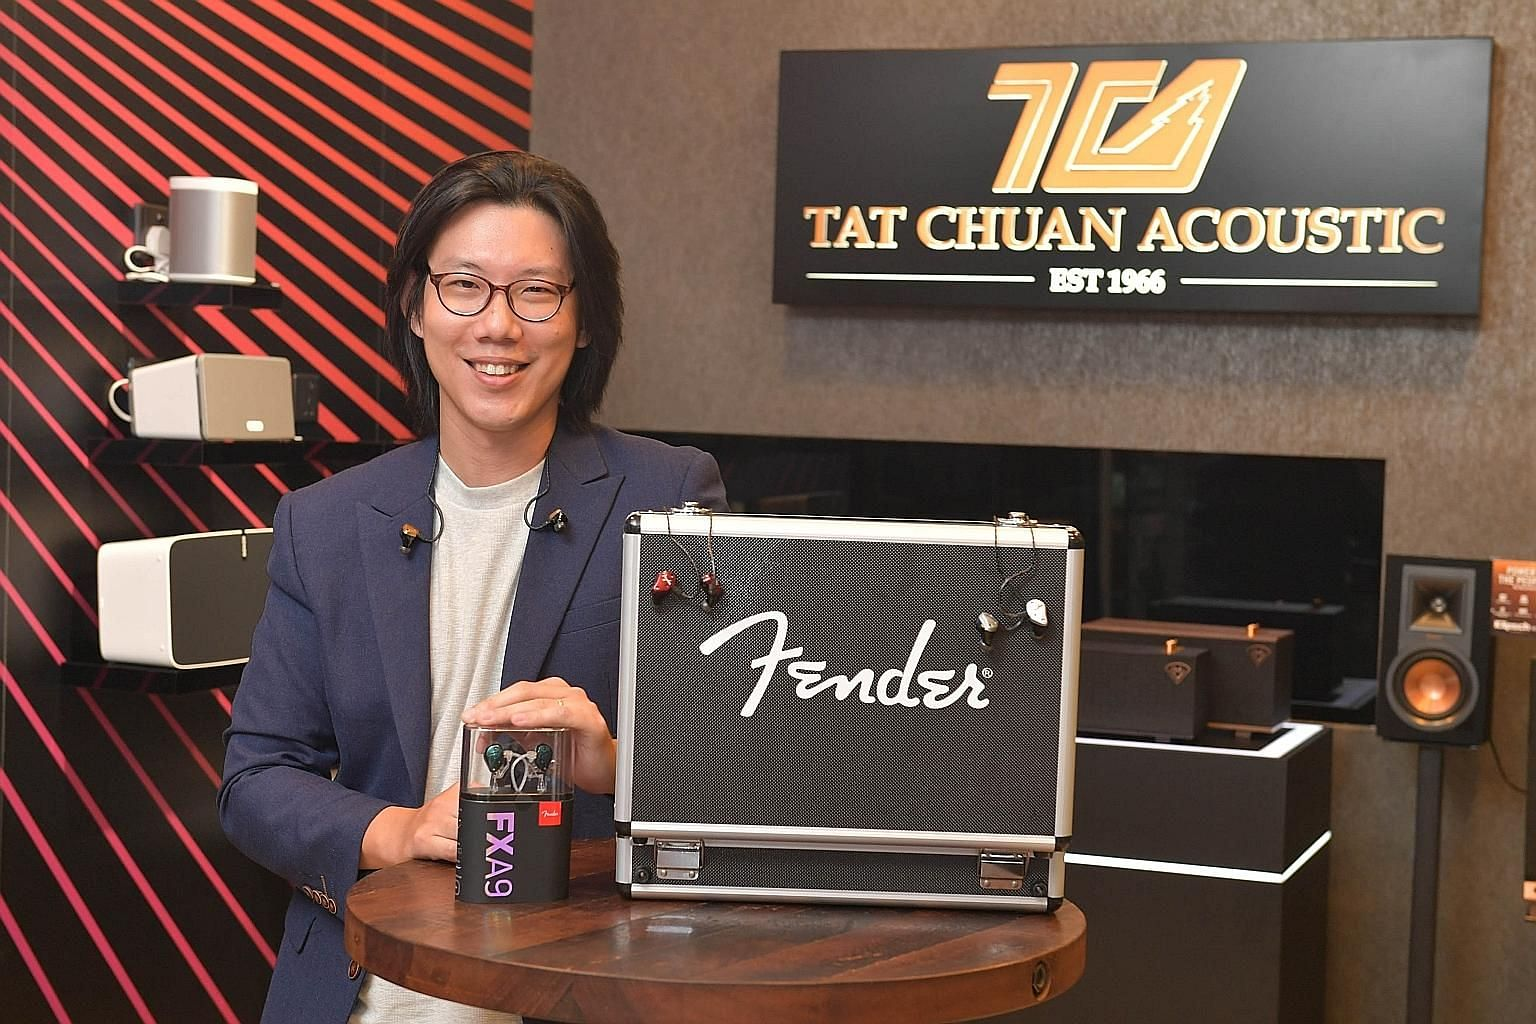 Back in 2004, Mr Mah Chern Wei was selling high-end, custom-made electric basses. In 2012, he asked Aurisonics founder Dale Lott if he could represent its products in Singapore and became the first person to manage the regional retail business for th